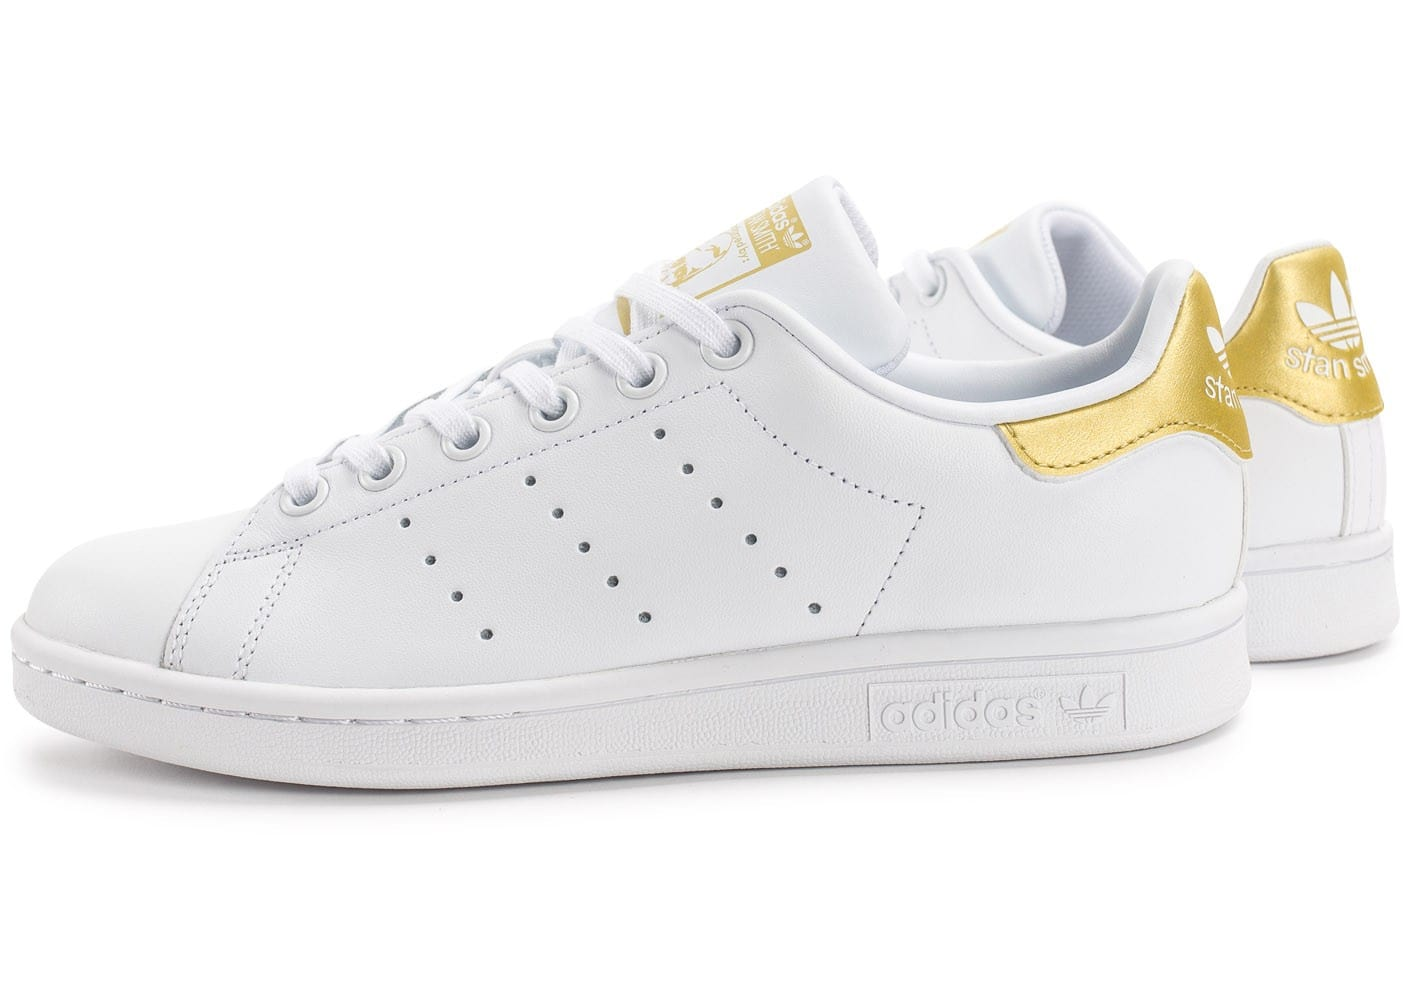 Adidas Stan Smith Blanc Rose Or Métallique BB1434 Soldes